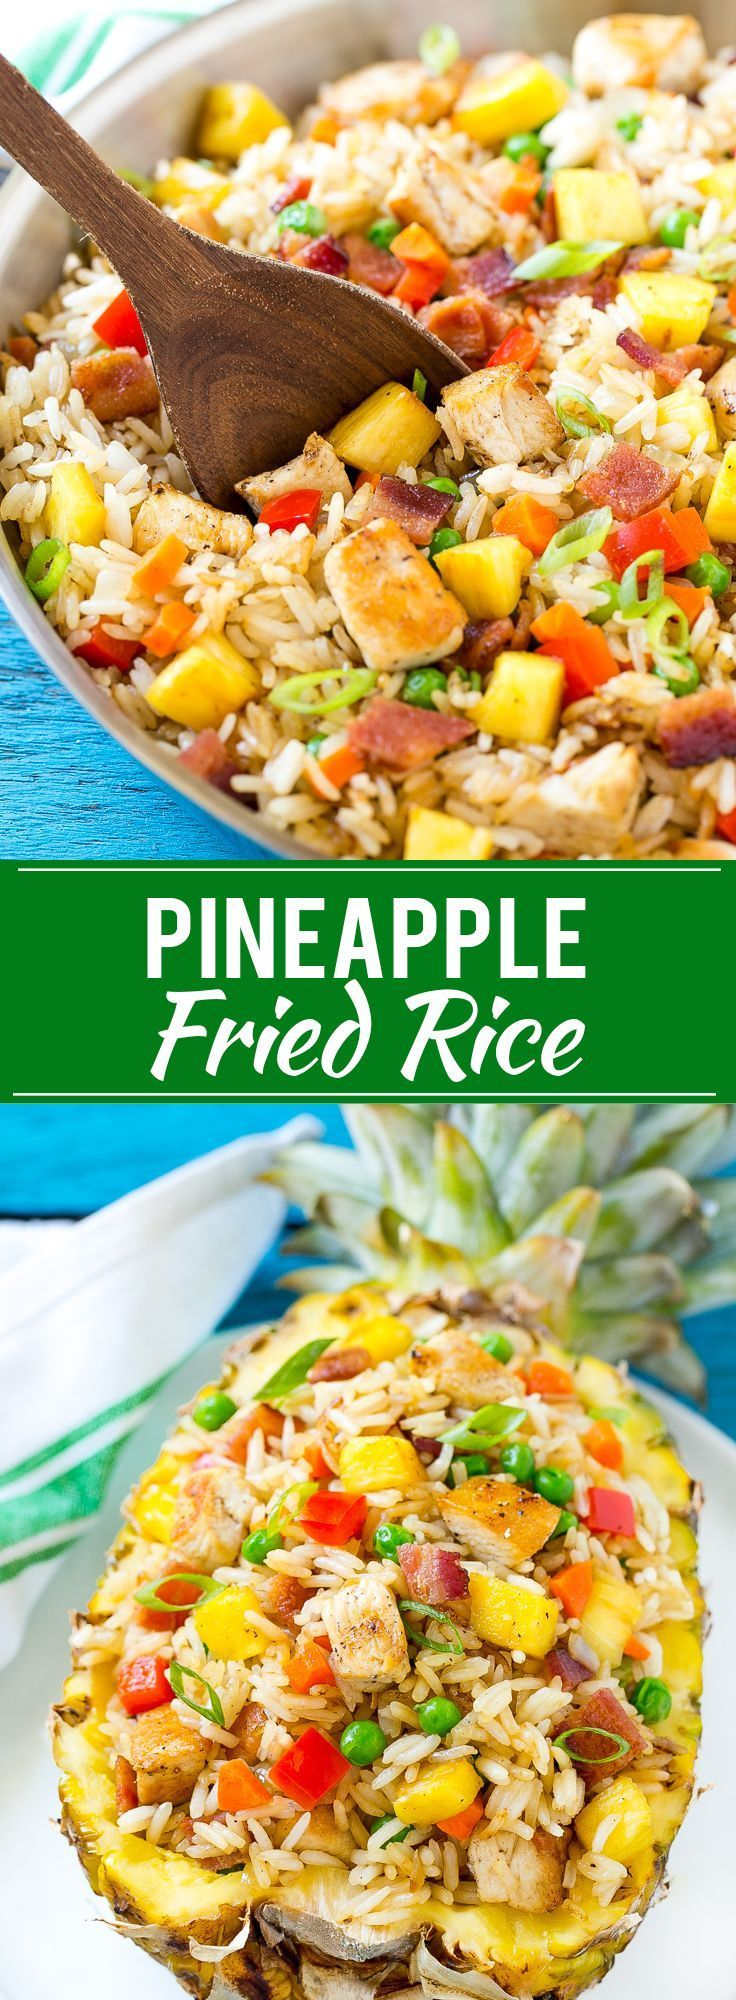 This recipe for pineapple fried rice is loaded with chicken, bacon, crunchy veggies and juicy pineapple. A simple and easy main course or side dish that's MUCH better than take out! #Back2SchoolSuccess #ad @successrice